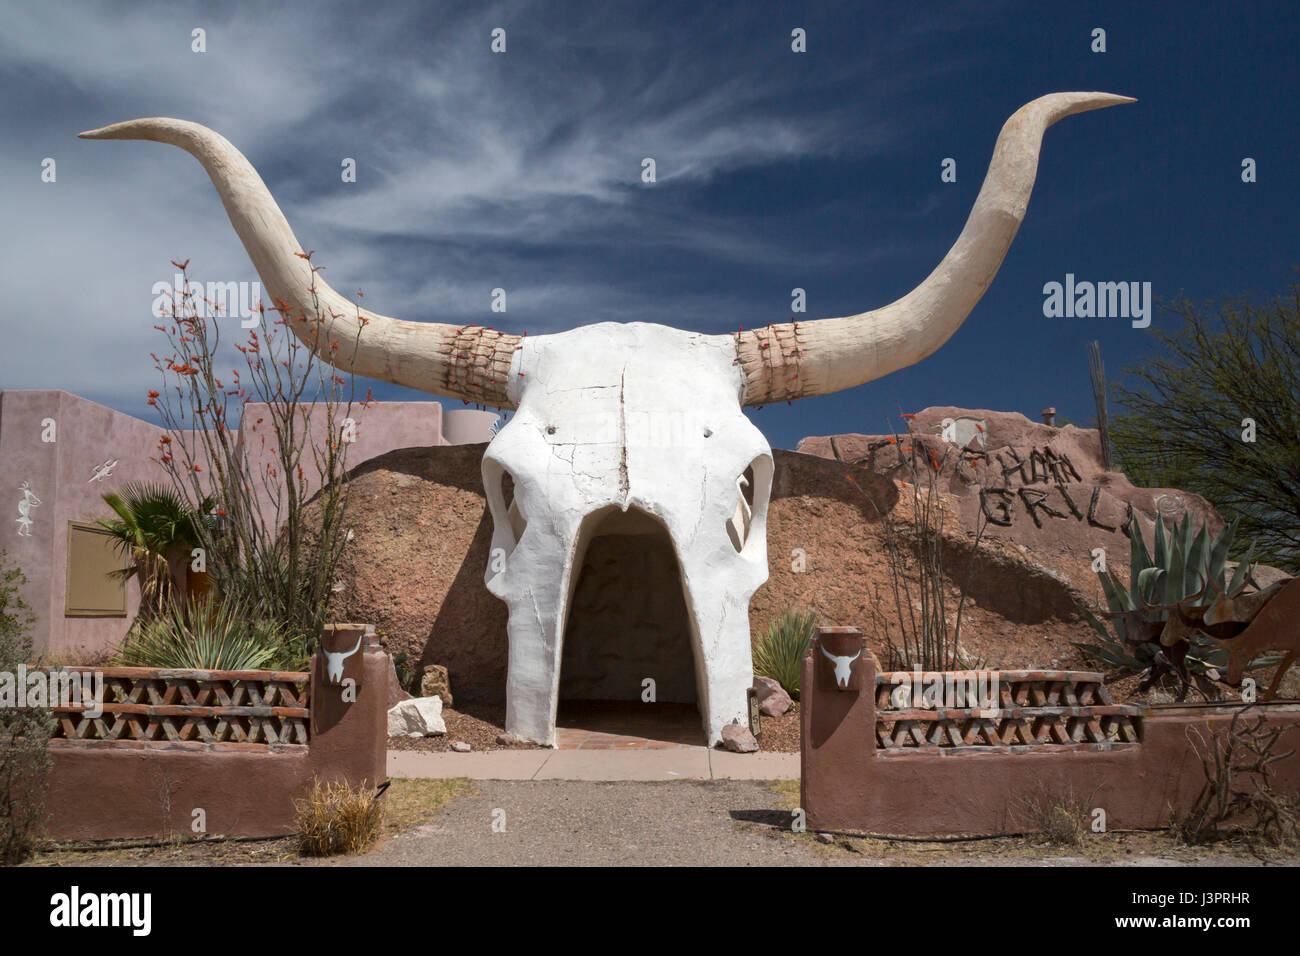 longhorn skull stockfotos longhorn skull bilder alamy. Black Bedroom Furniture Sets. Home Design Ideas